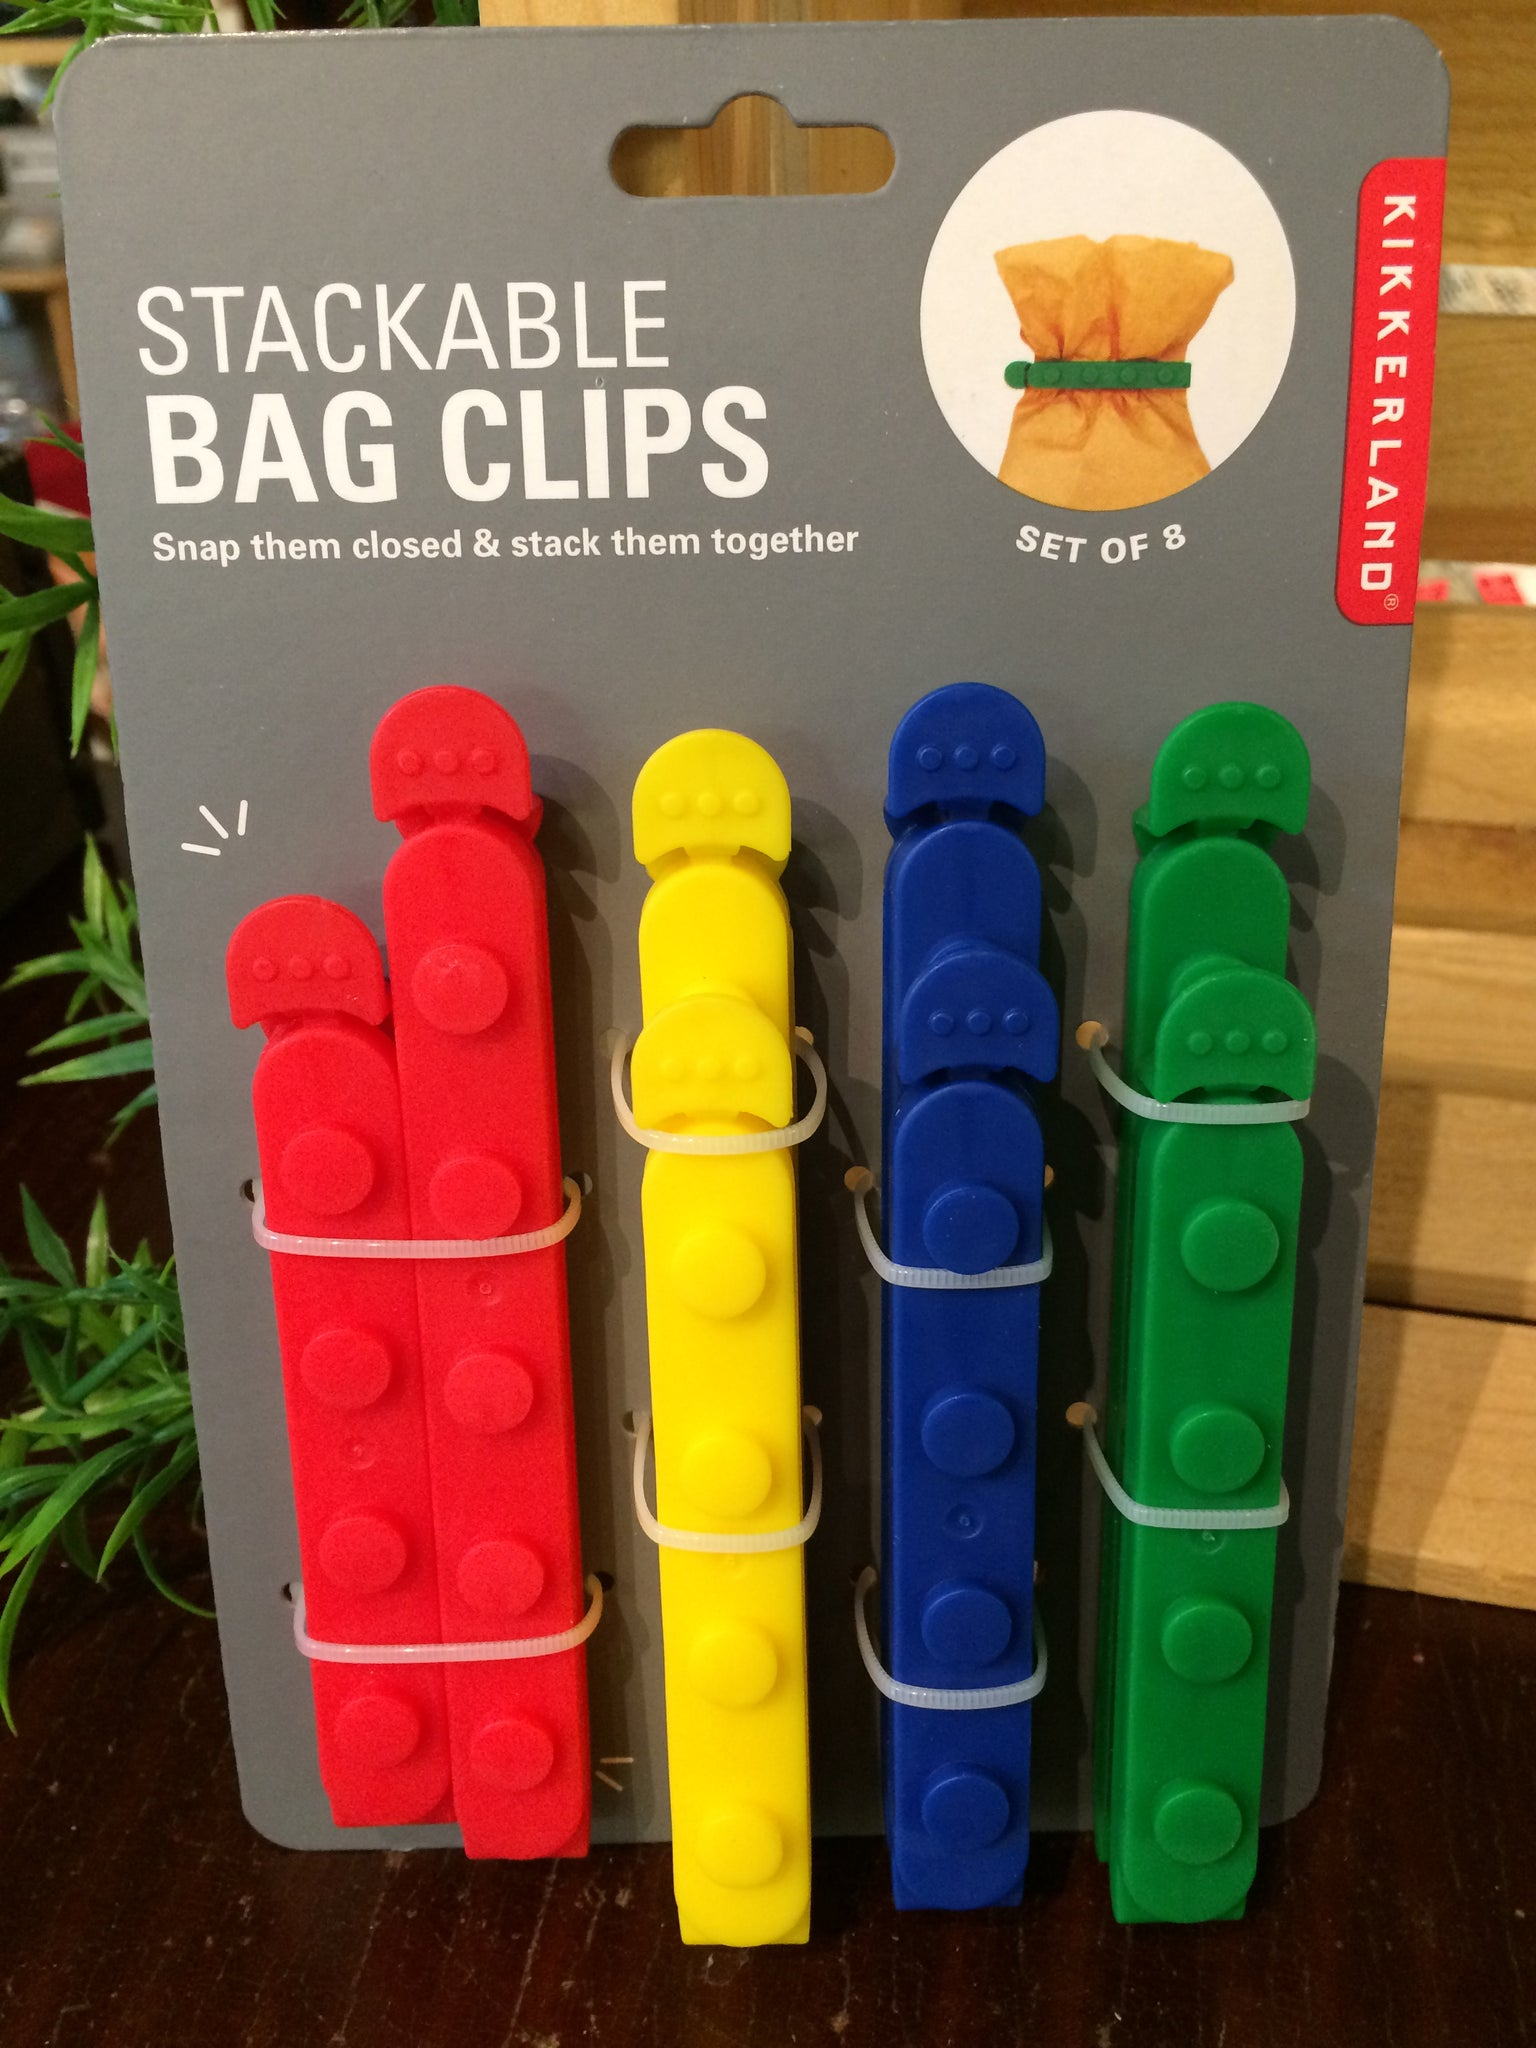 STACKABLE BAG CLIPS